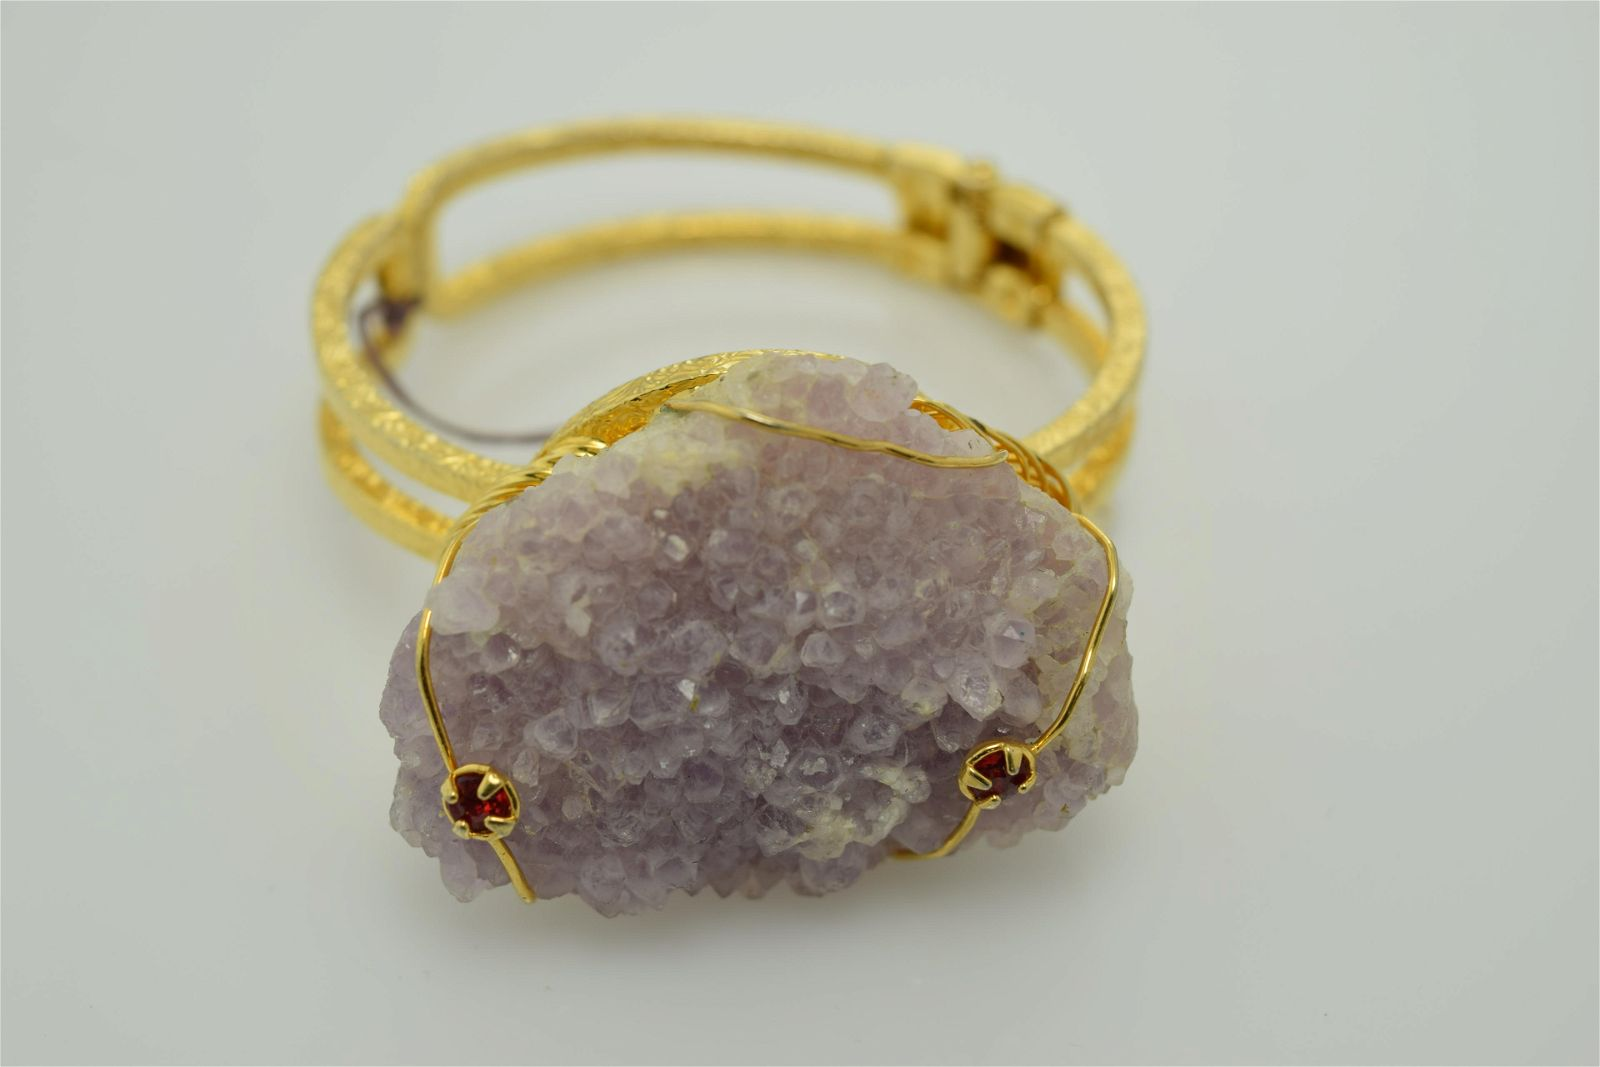 A Hobe signed gold tone clamper bracelet with large